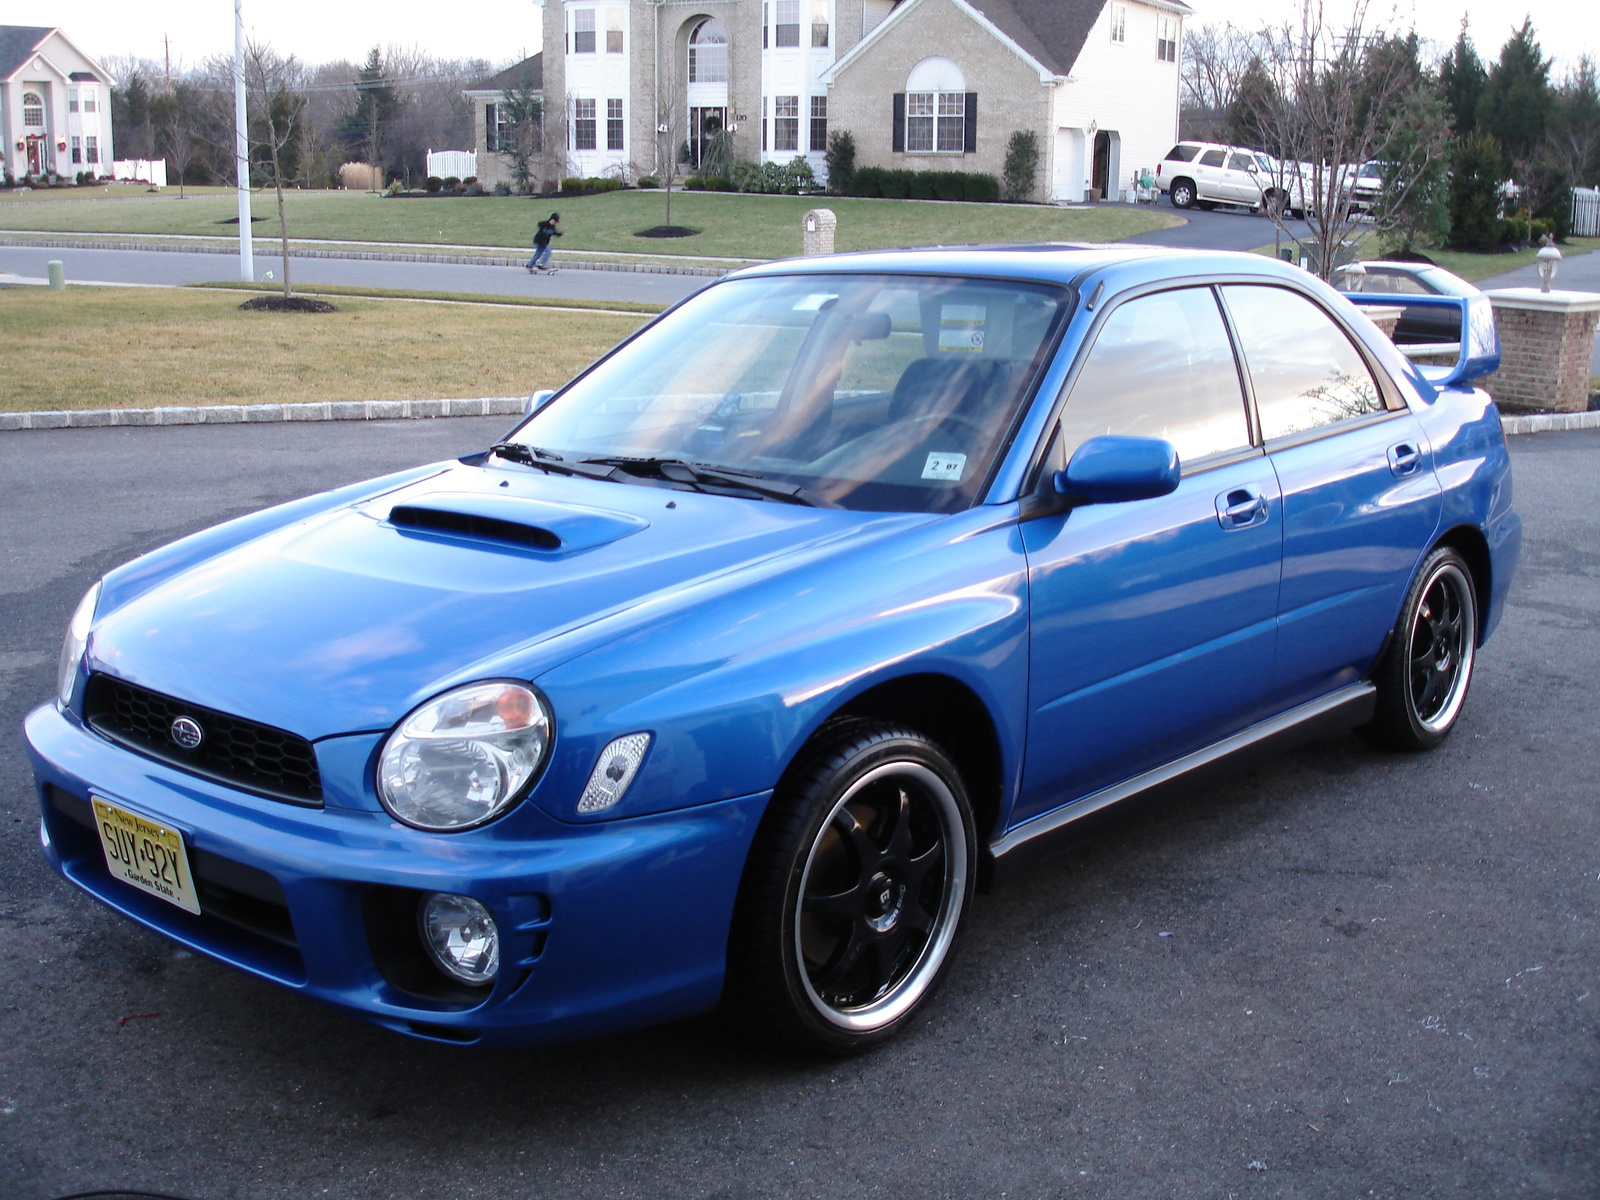 2003 subaru impreza wrx related infomationspecifications weili 2003 subaru impreza wrx base 2003 subaru impreza wrx picture vanachro Gallery